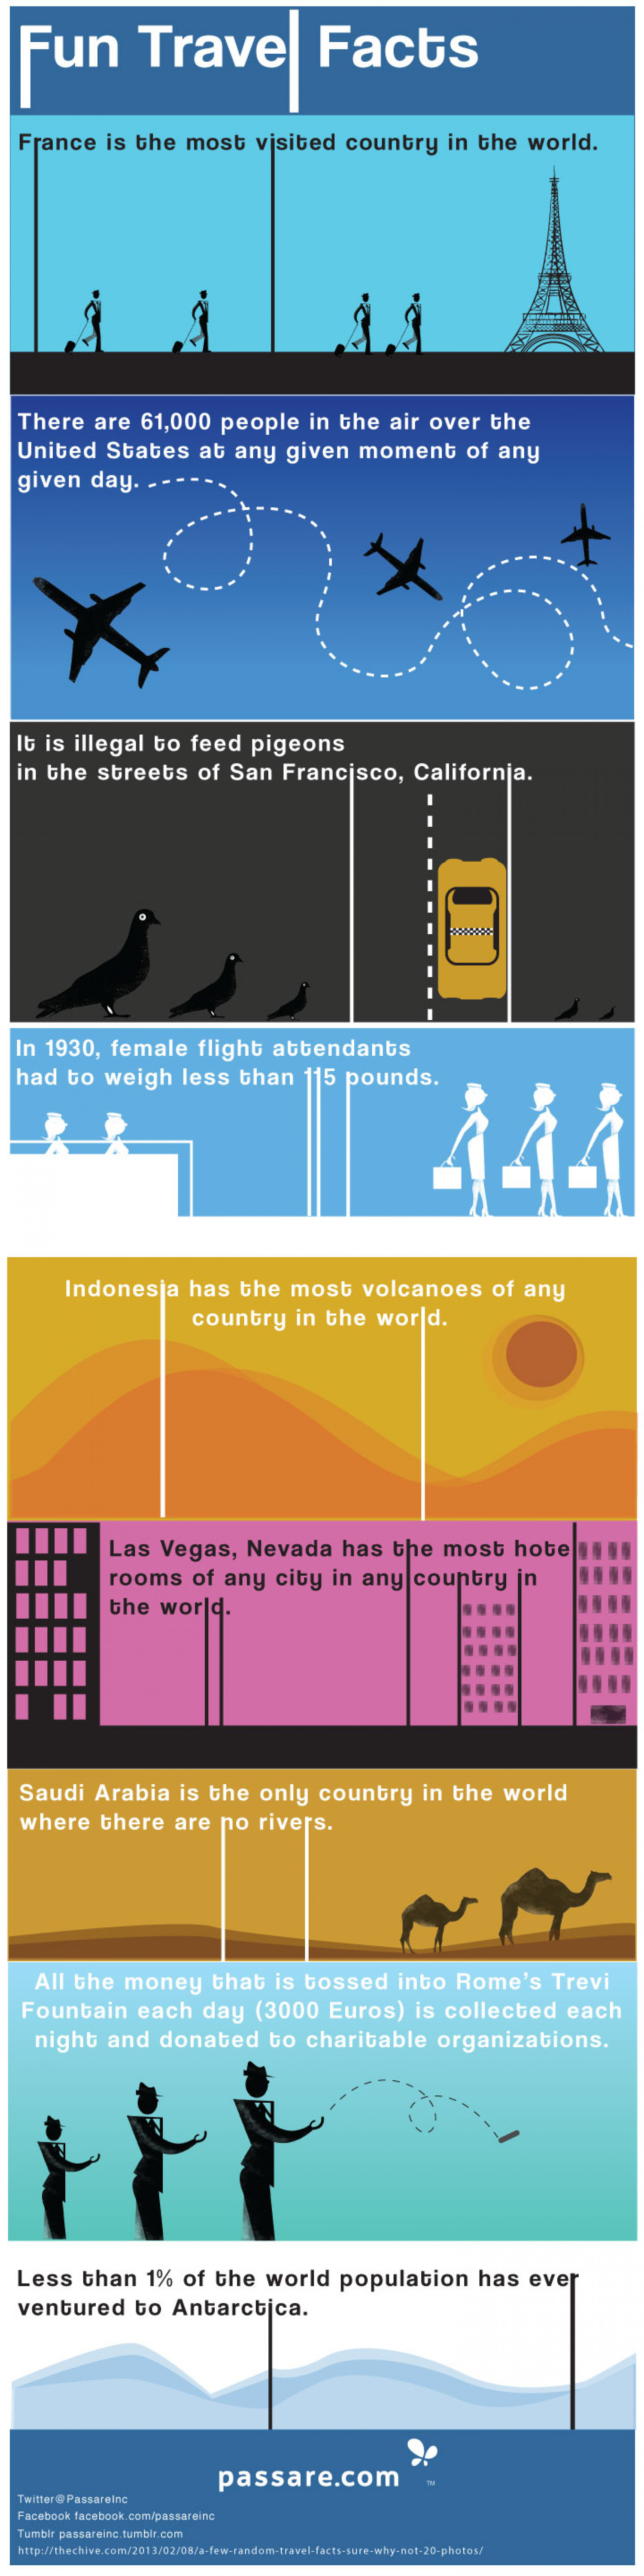 Fun Facts About Travel Infographic